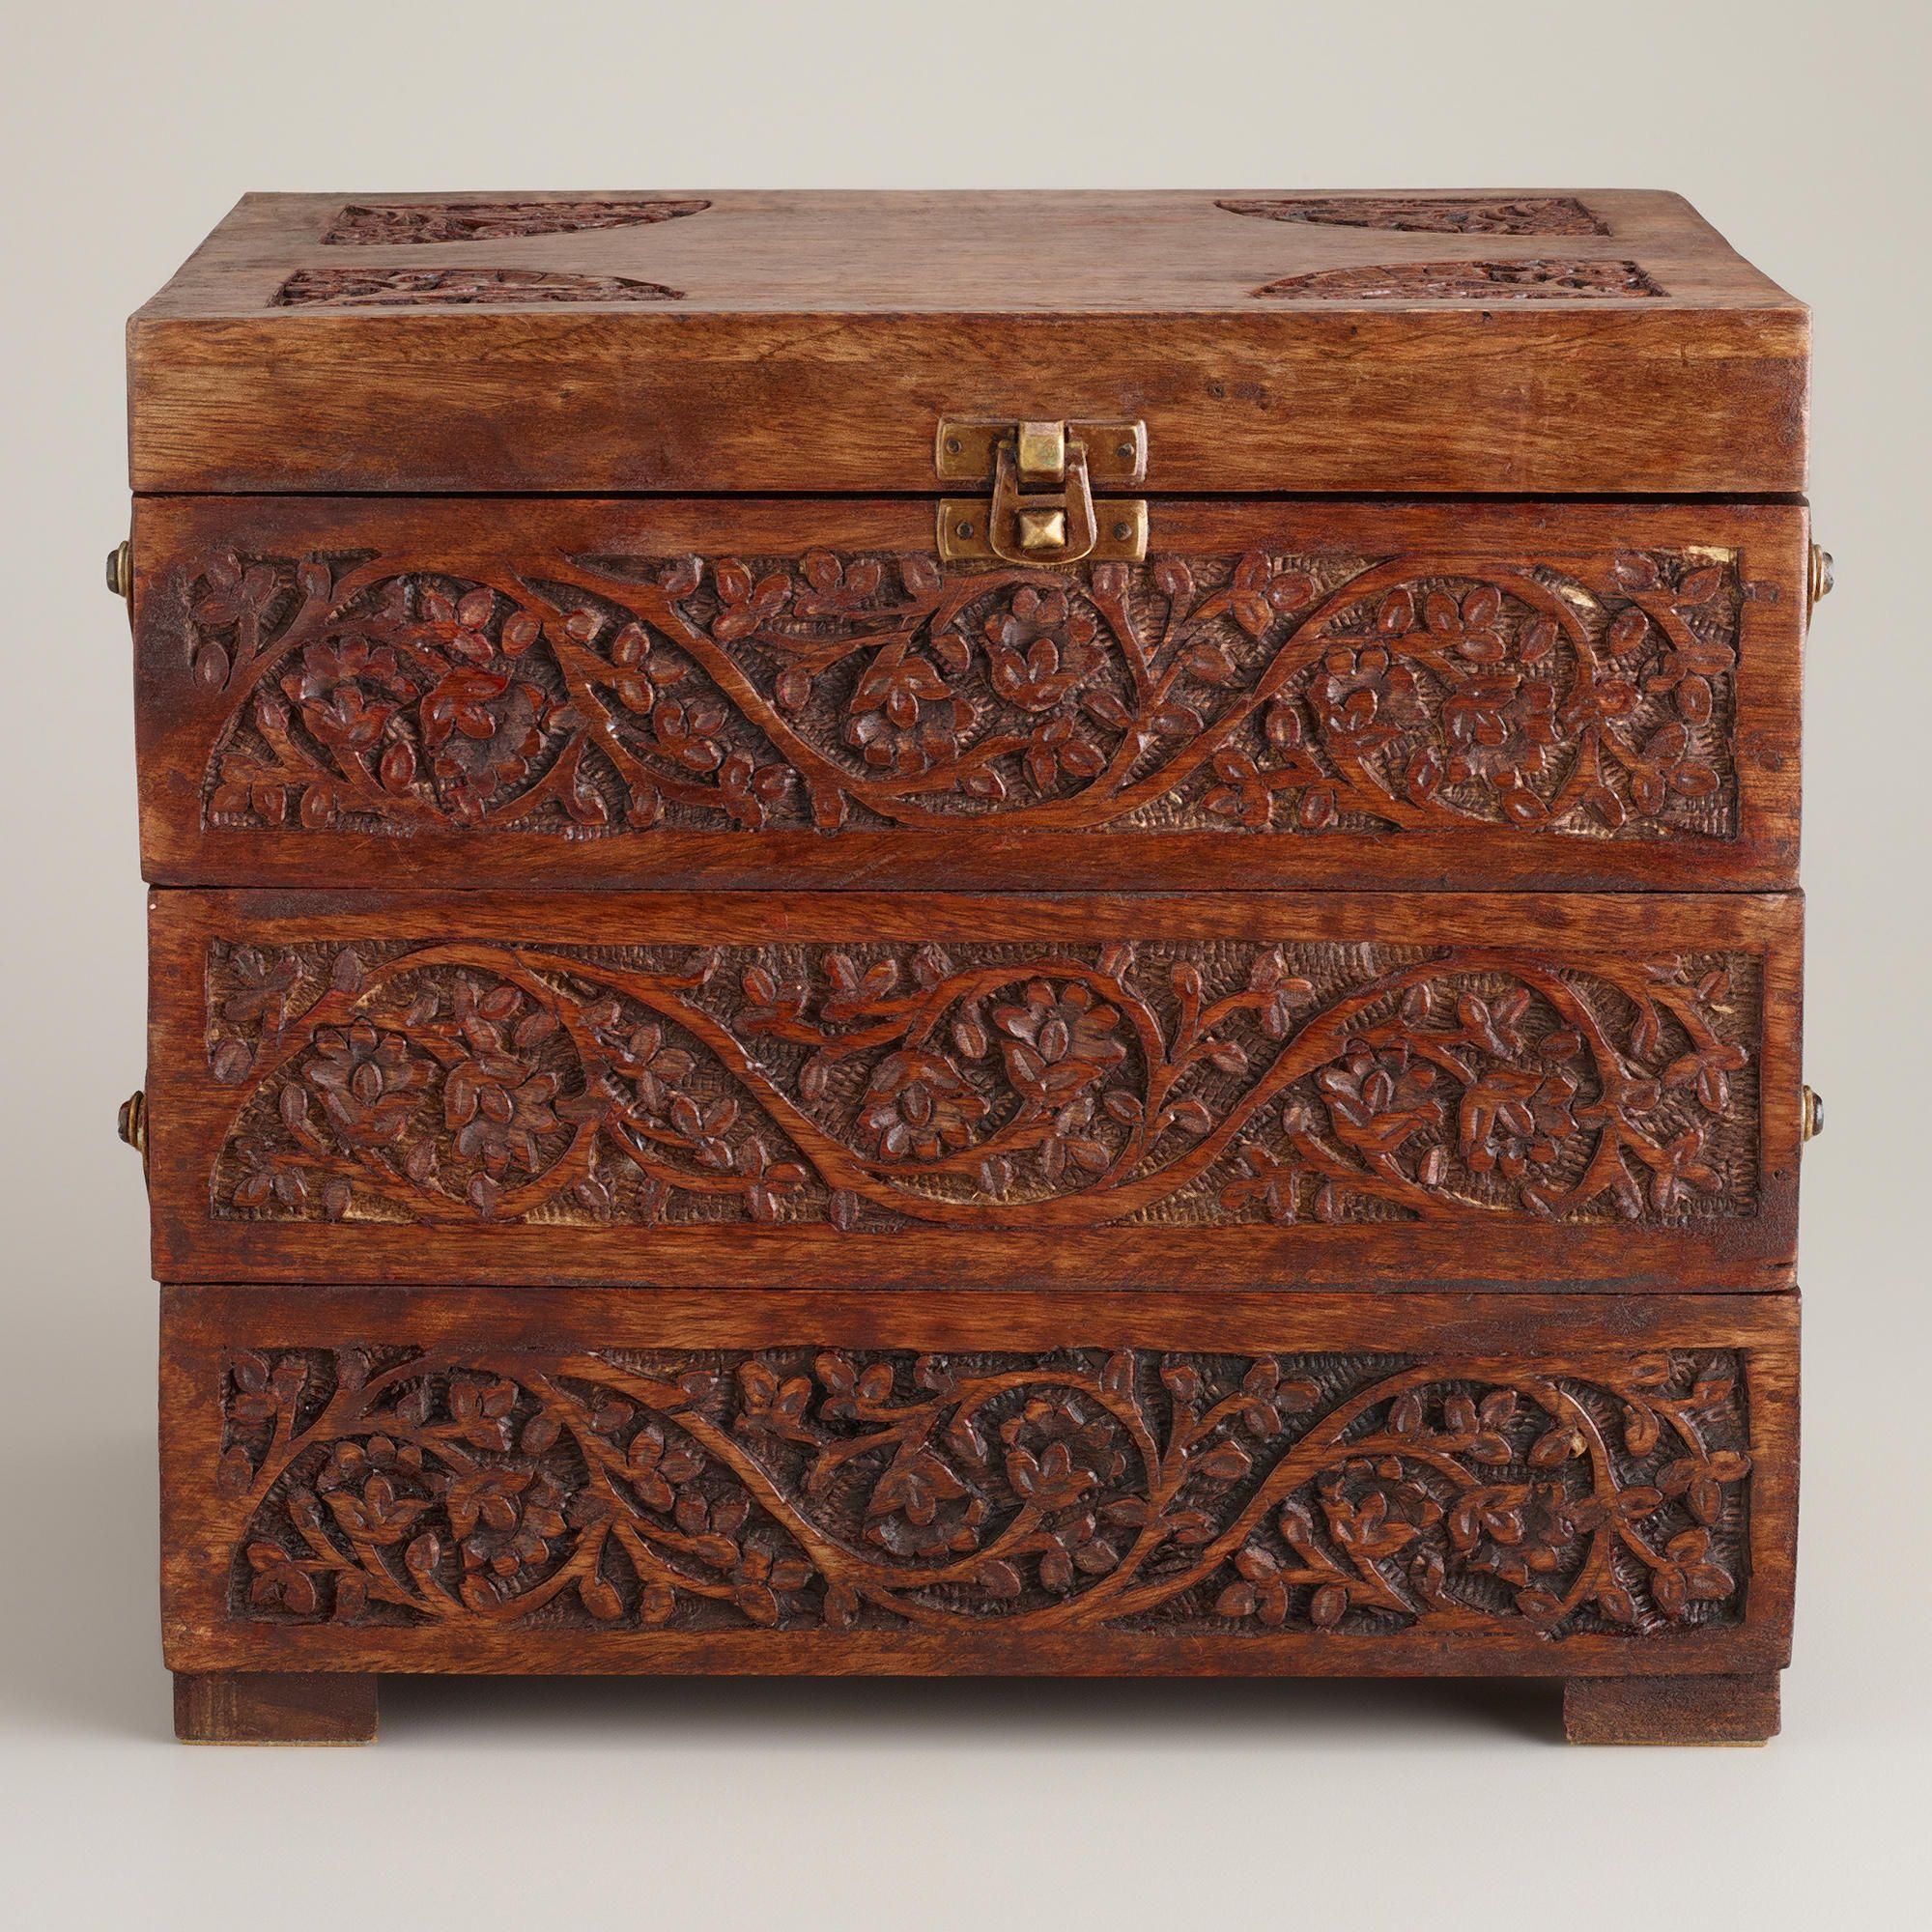 World Market Jewelry Box Stunning Carved Wood Tiered Jewelry Box  World Market  Want  Pinterest Design Ideas